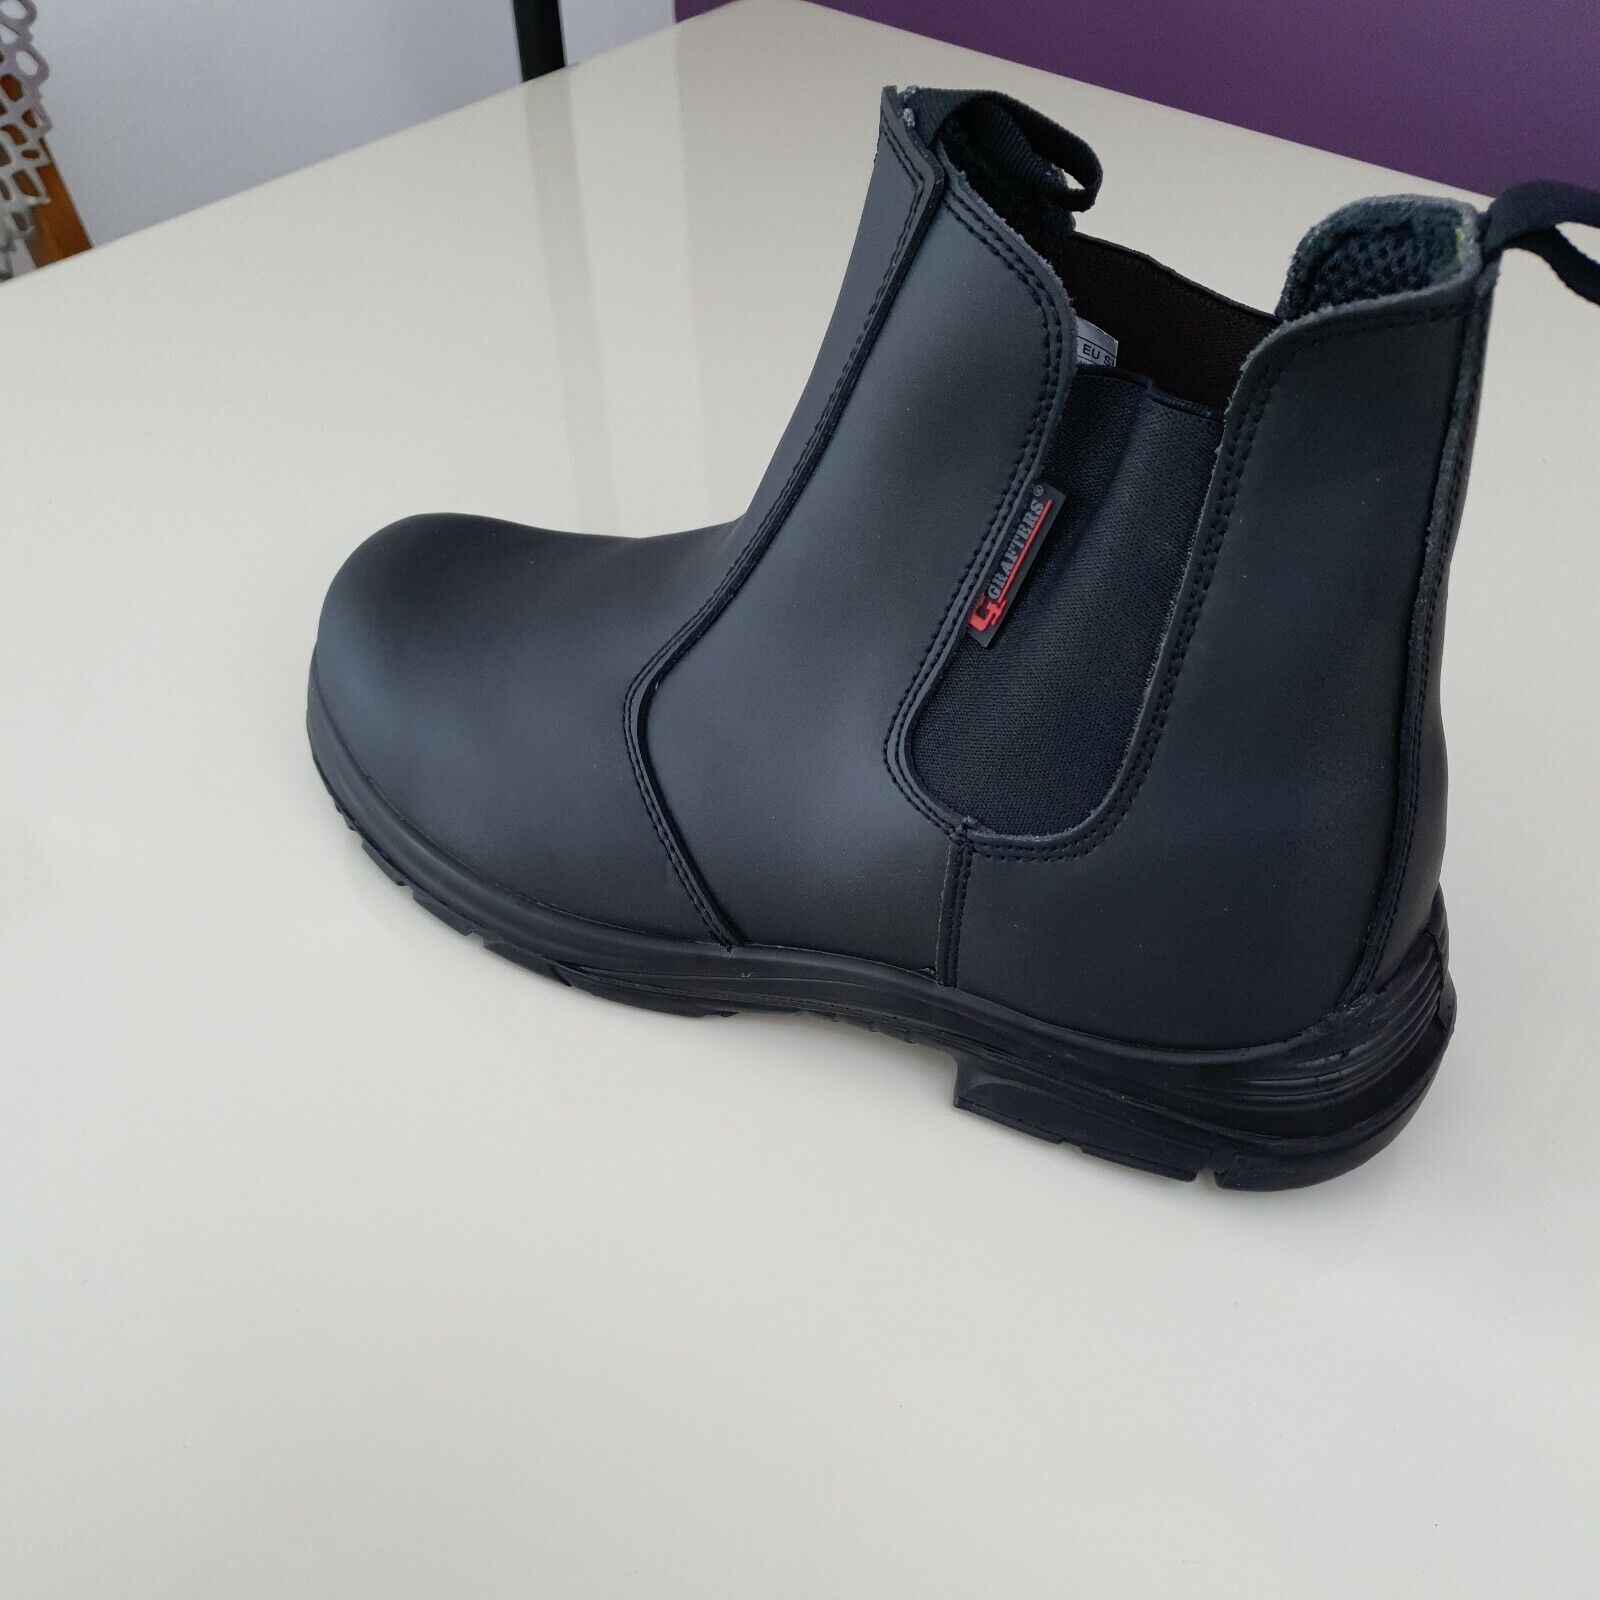 MENS GRAFTERS WIDE EXTRA FIT DEALER STEEL TOE CAP SAFETY BOOTS WORK SHOES BLACK